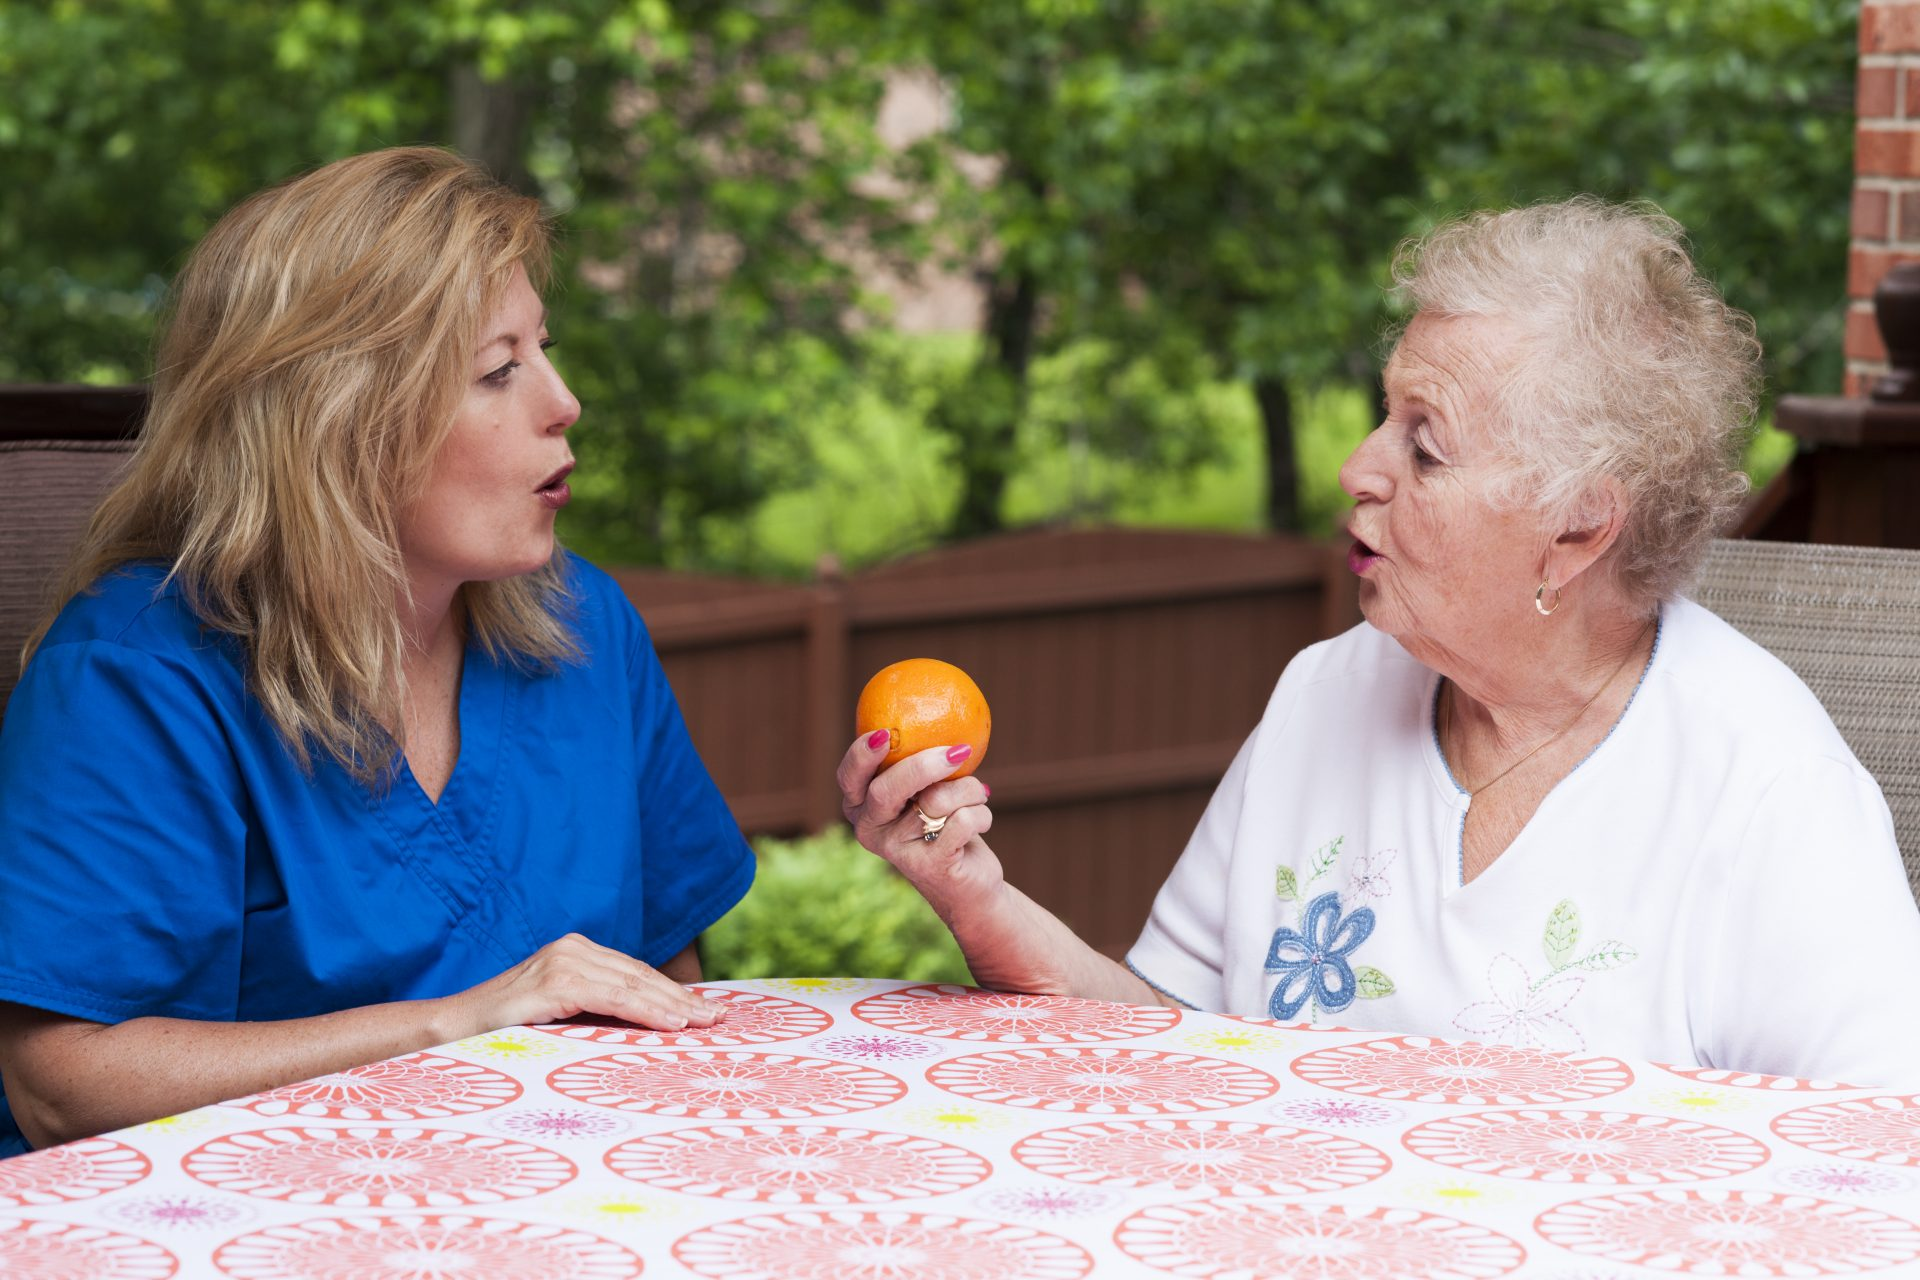 Speech pathologist with female stroke patient outdoors during a home health therapy session modeling the production of a consonant during speech training for apraxia